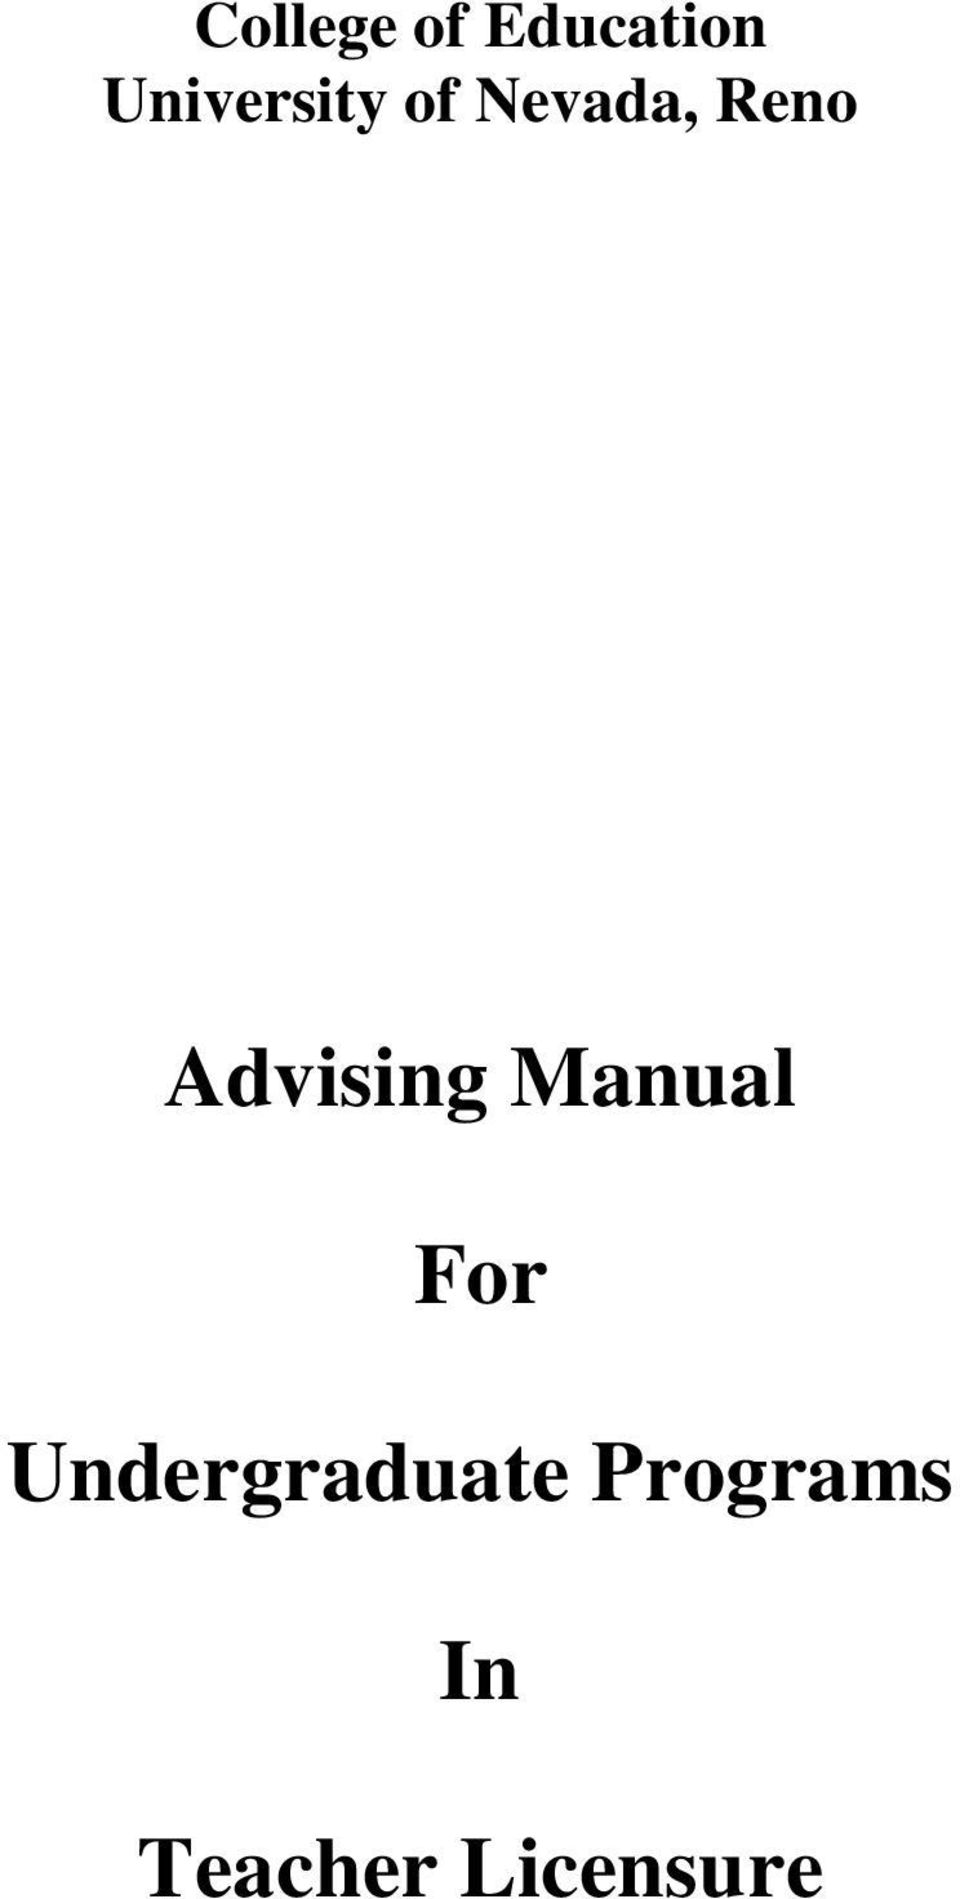 Advising Manual For